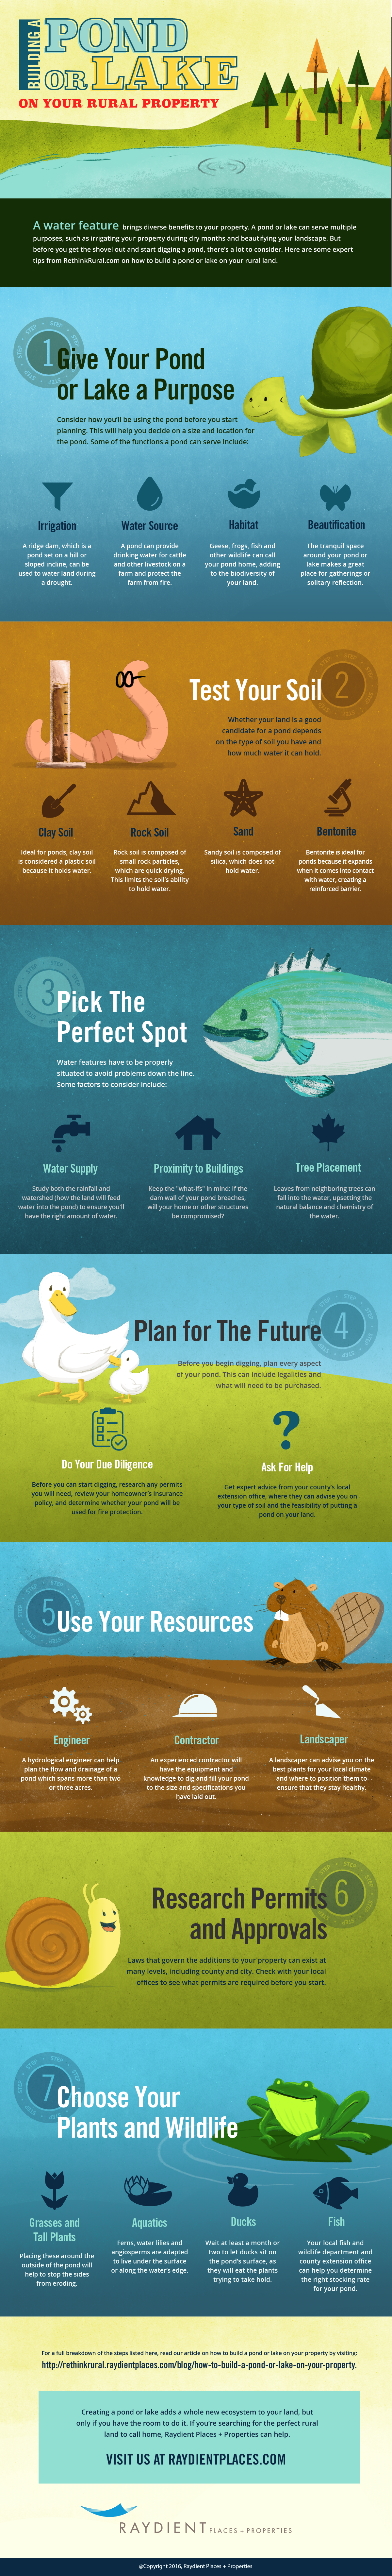 How to Build a Pond or Lake on Rural Property Infographic.png